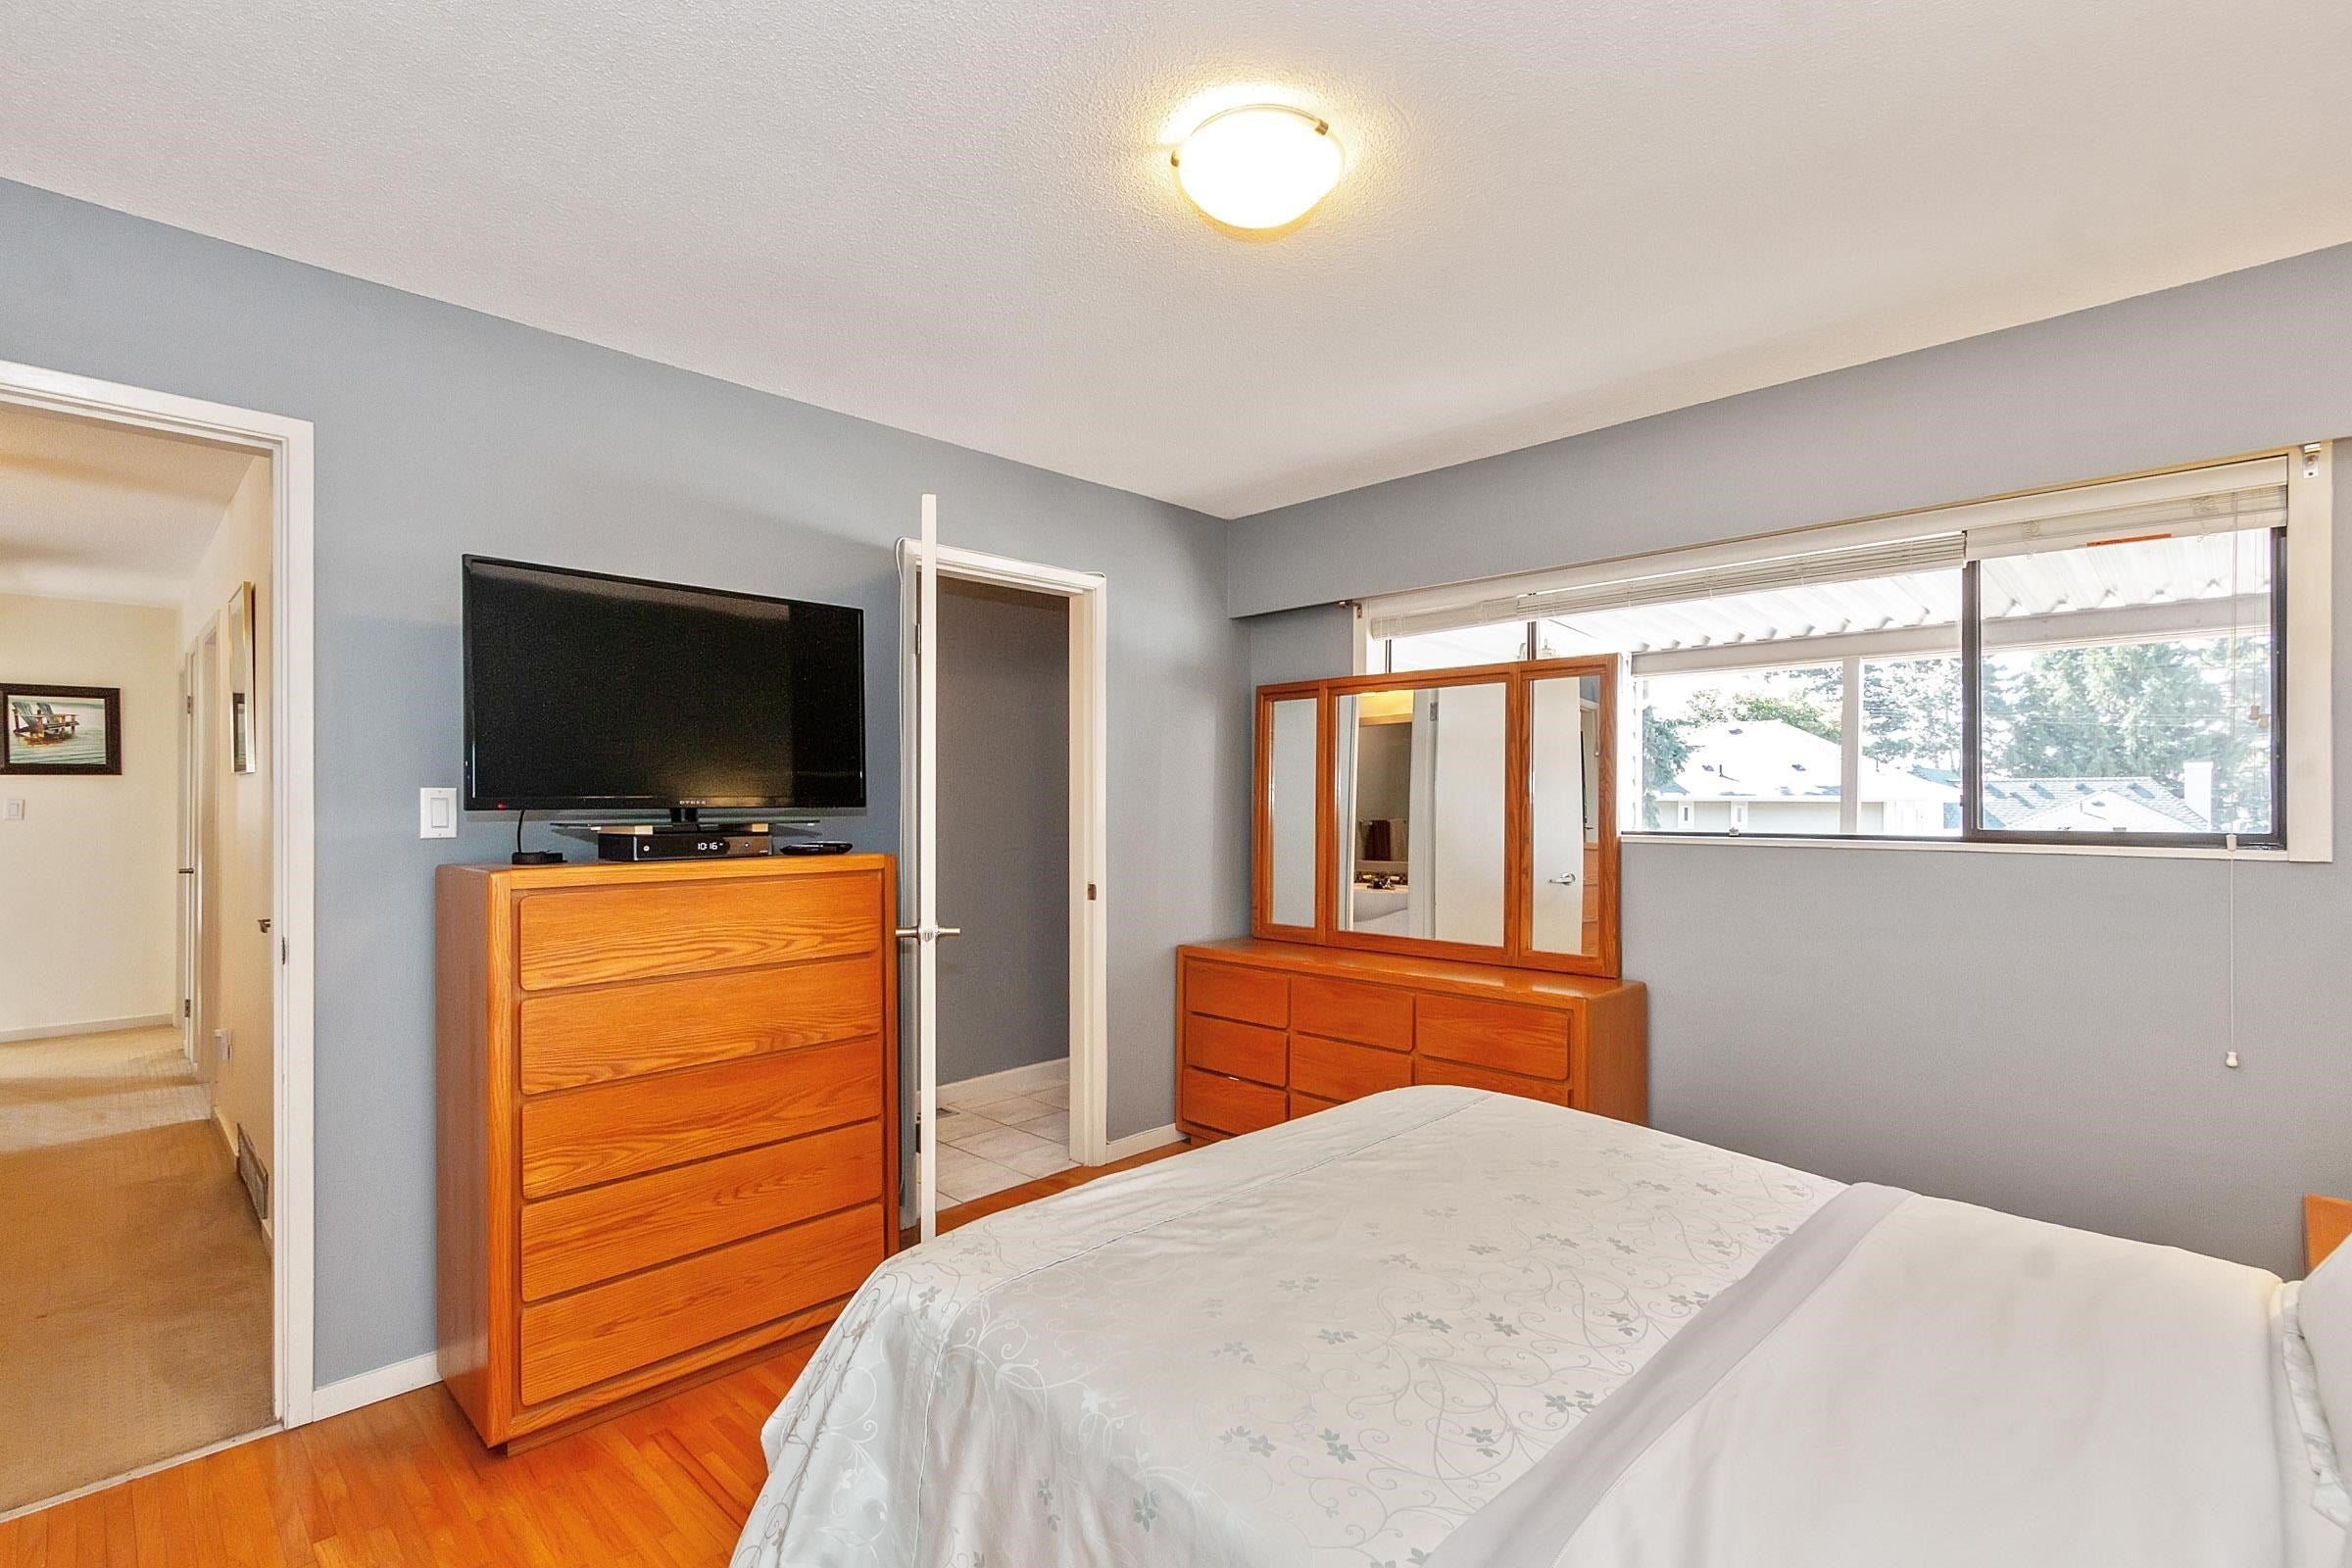 117 W ST. JAMES ROAD - Upper Lonsdale House/Single Family for sale, 5 Bedrooms (R2614107) - #11